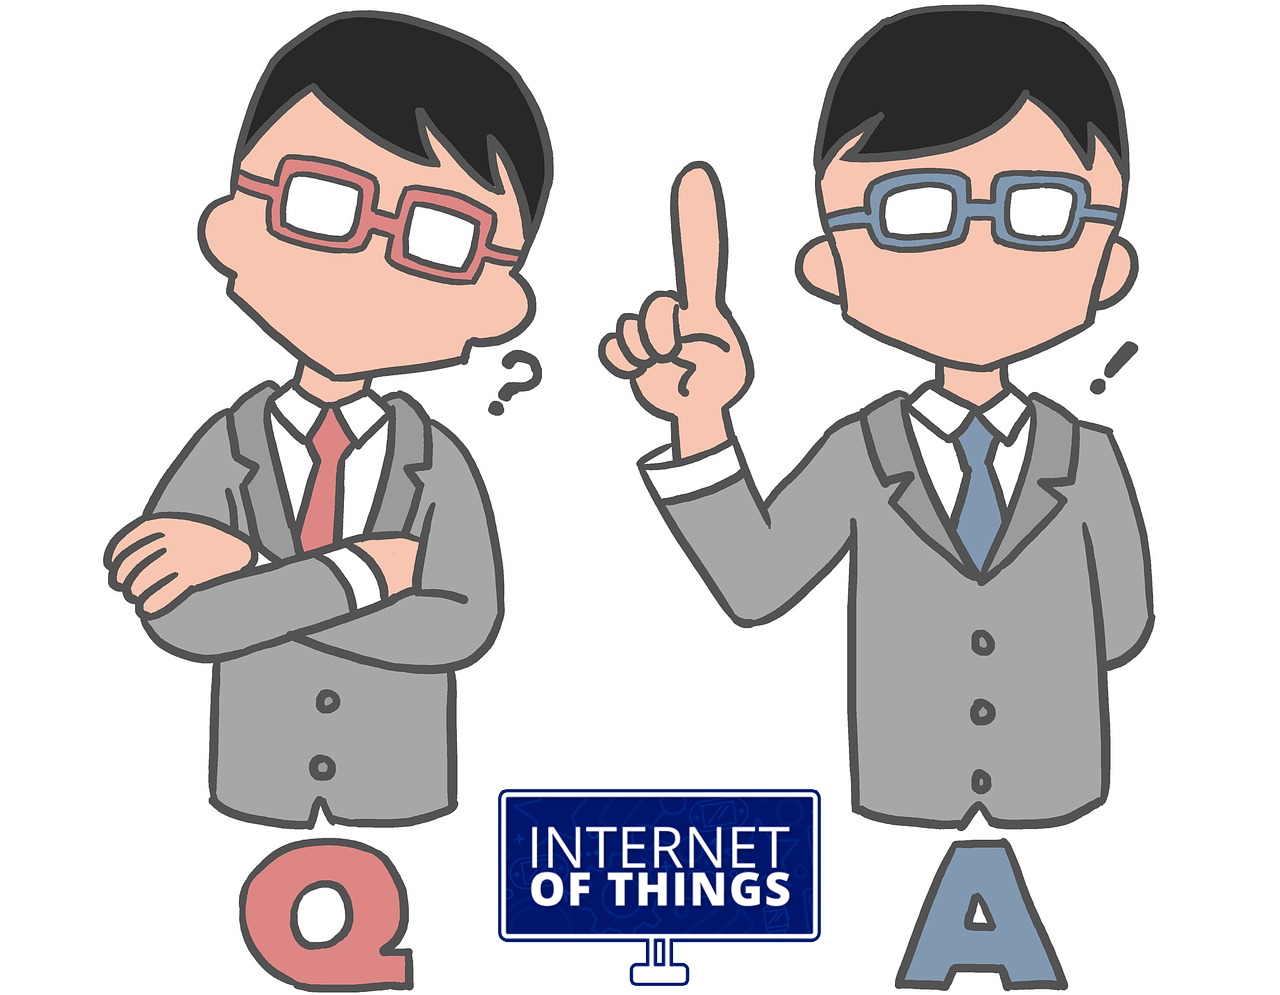 internet of things questions and answers pdf